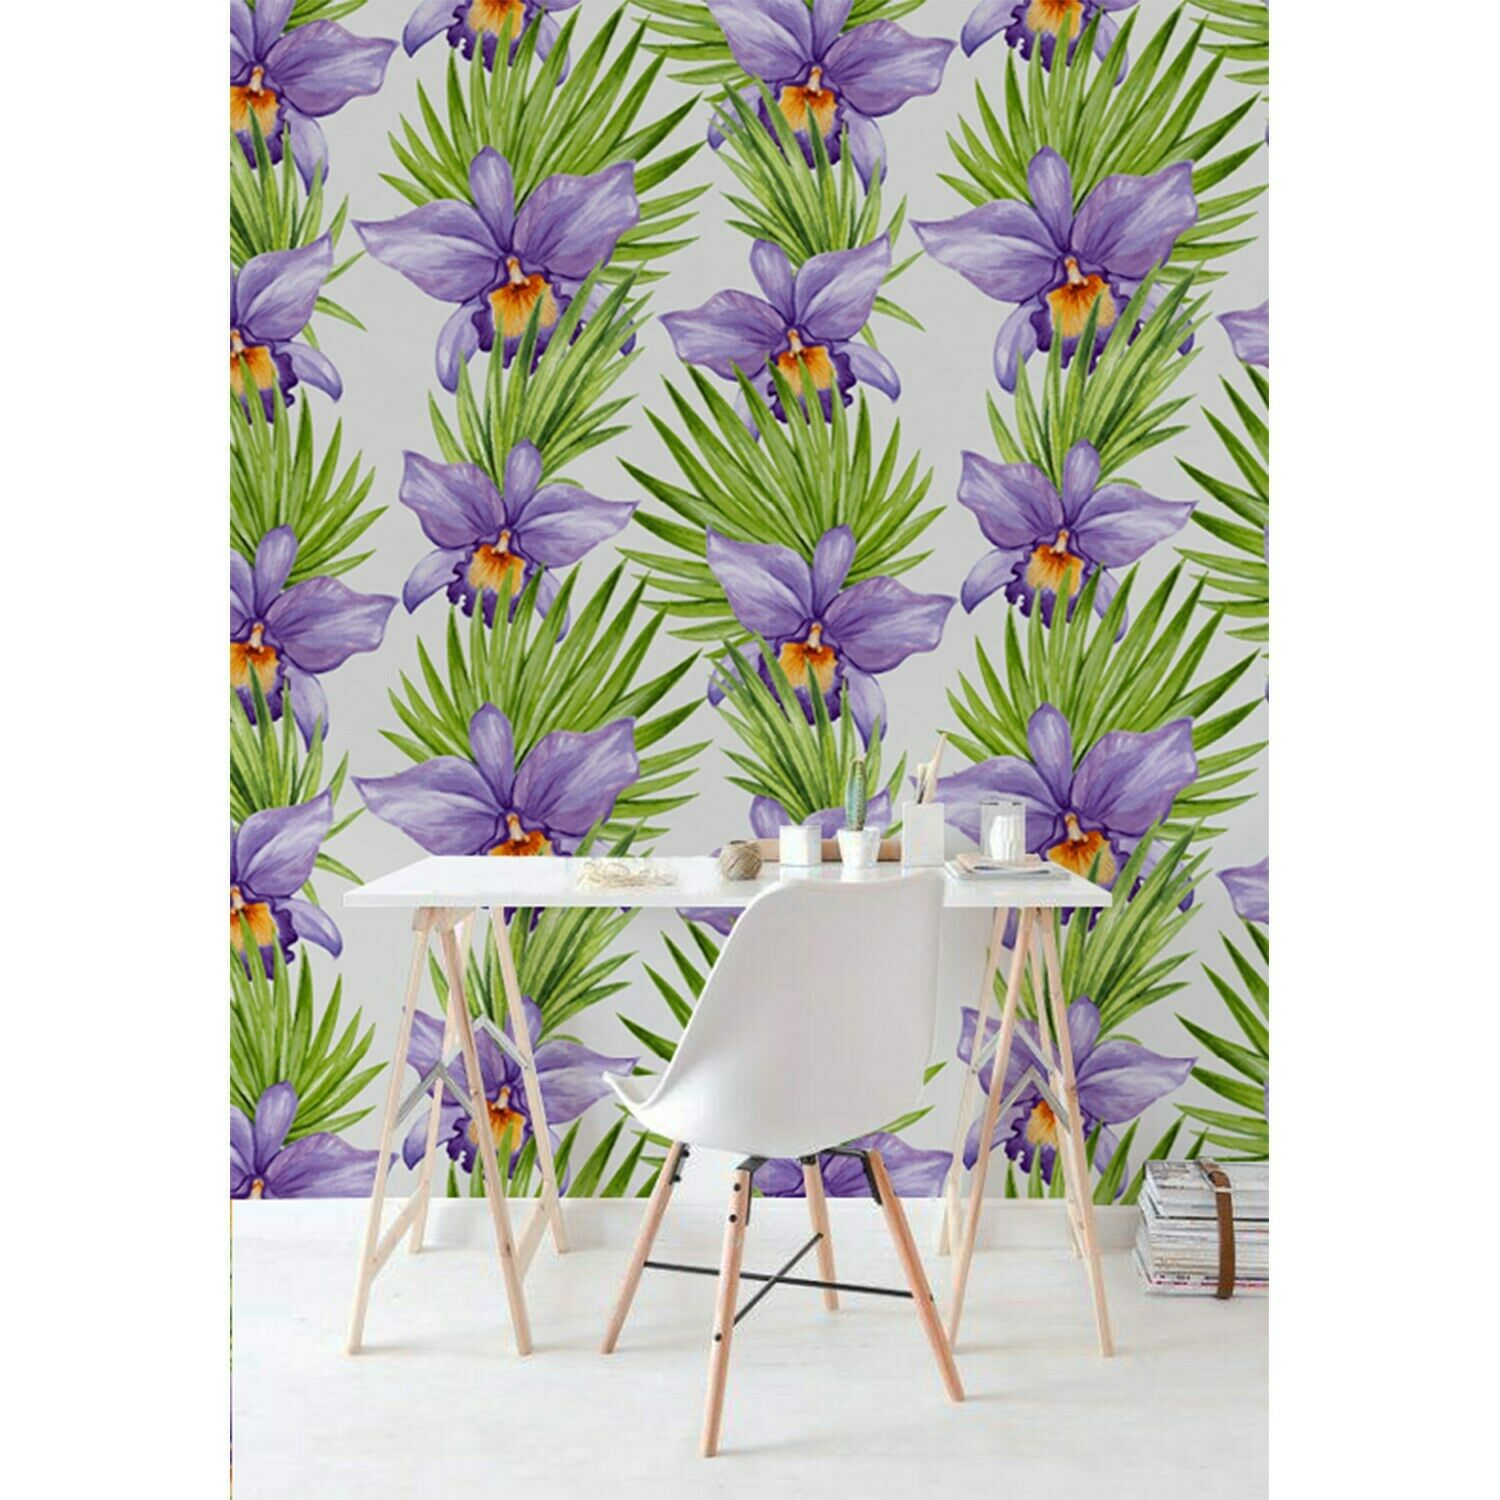 lila floral Non-Woven wallpaper meadow nature Traditional spring blooming